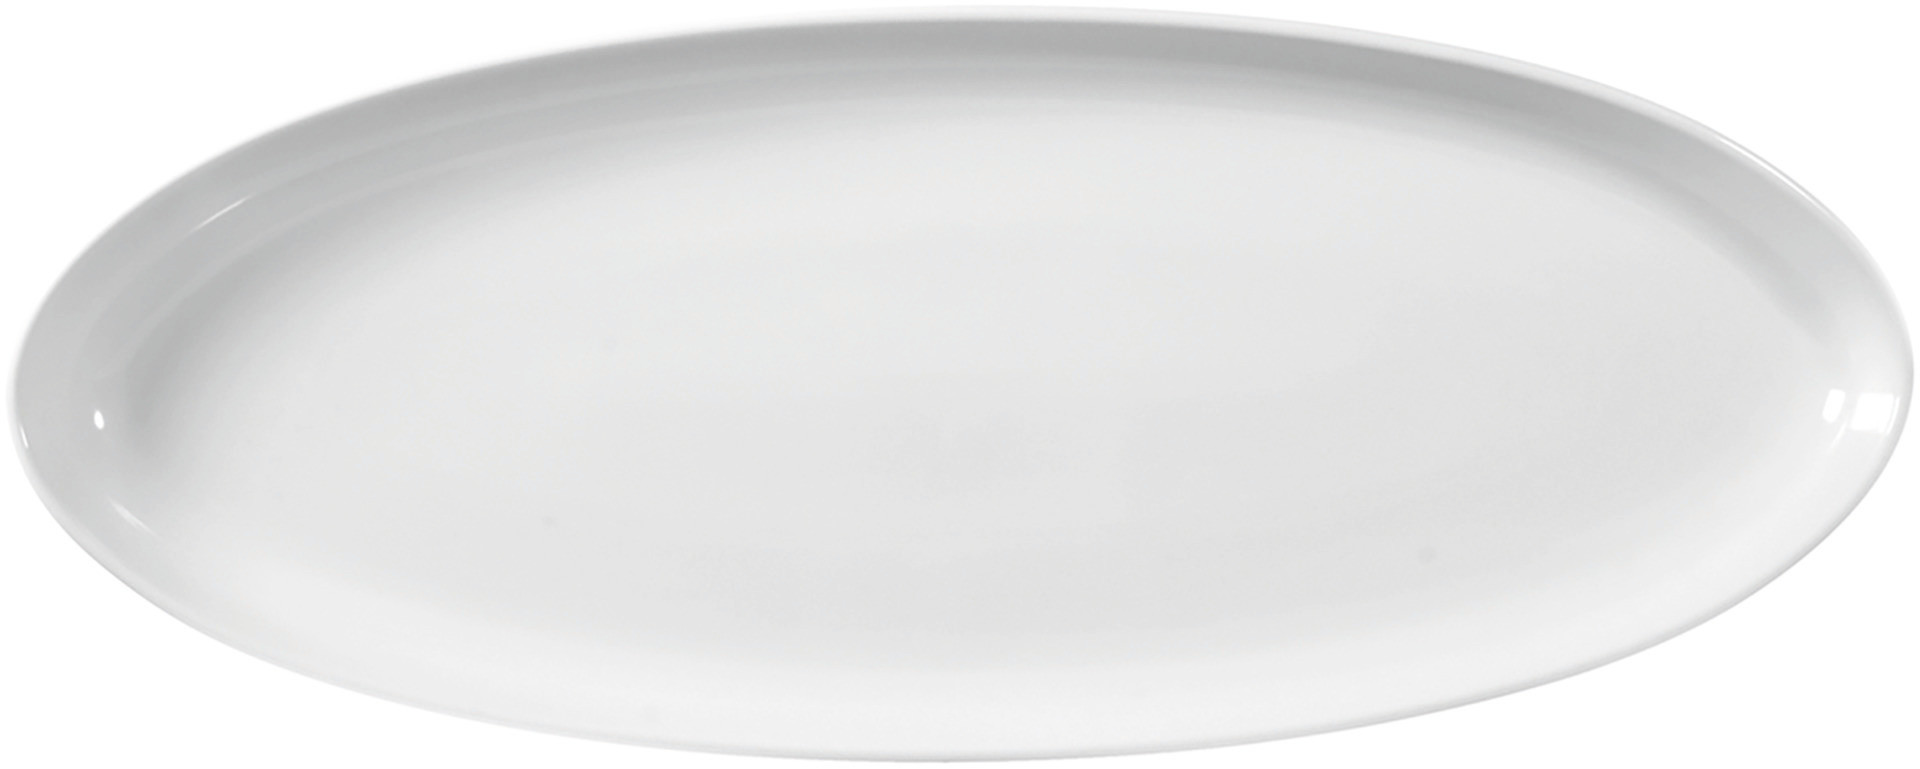 Buffet Gourmet, Platte oval 620 x 248 mm